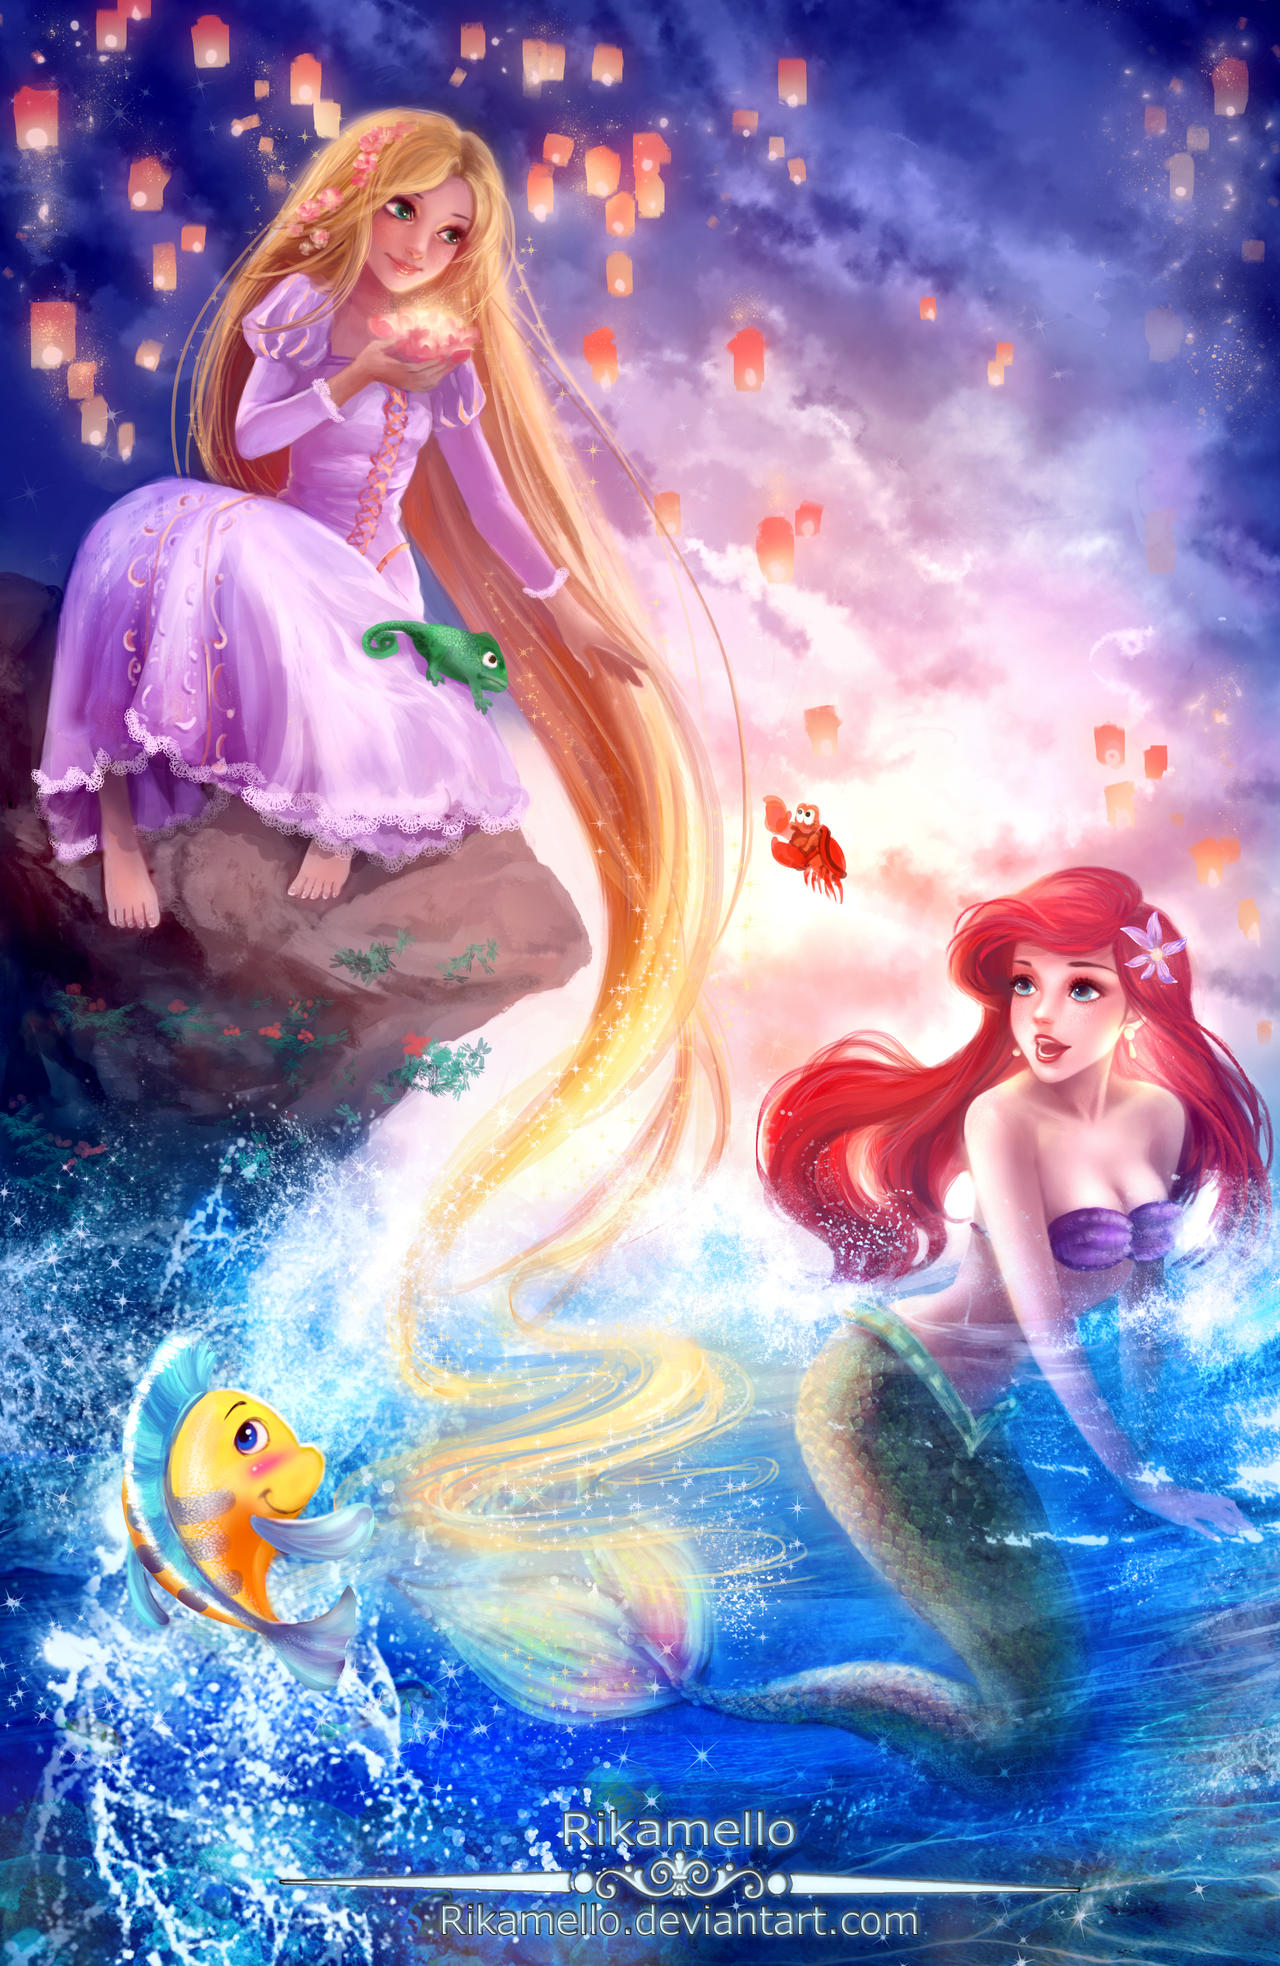 Rapunzel Let Down Your Hair For Ariel By Rikamello On